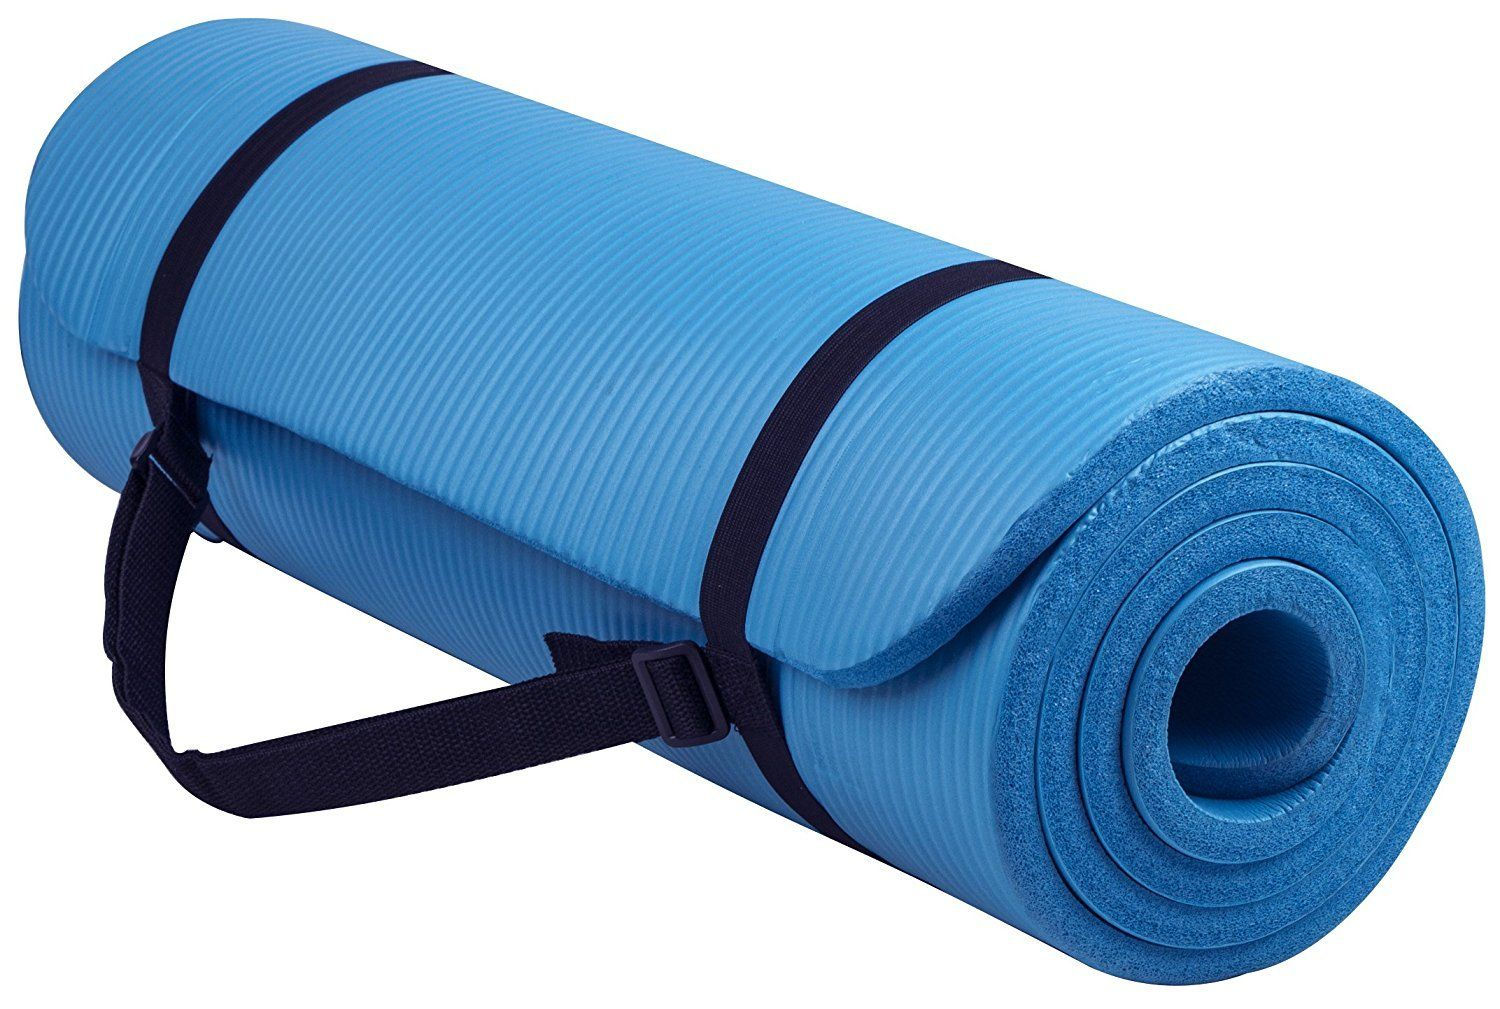 exercise mats for pilates carry strap fitness mat with thick yoga